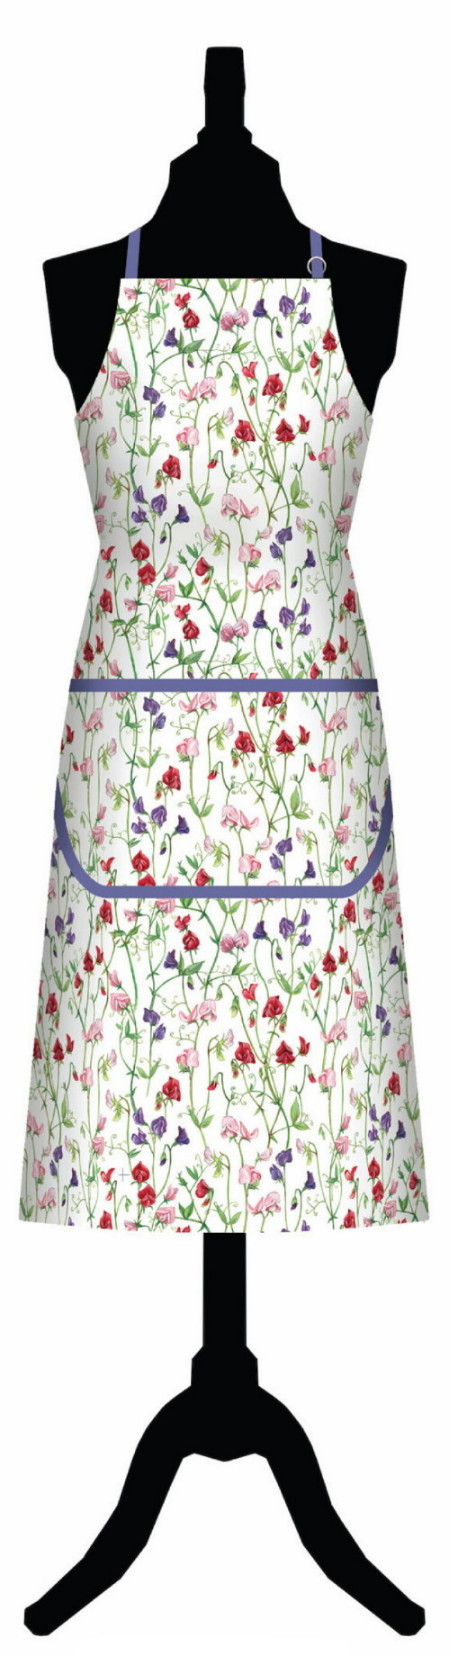 Sweet Pea Cotton Apron with Pocket